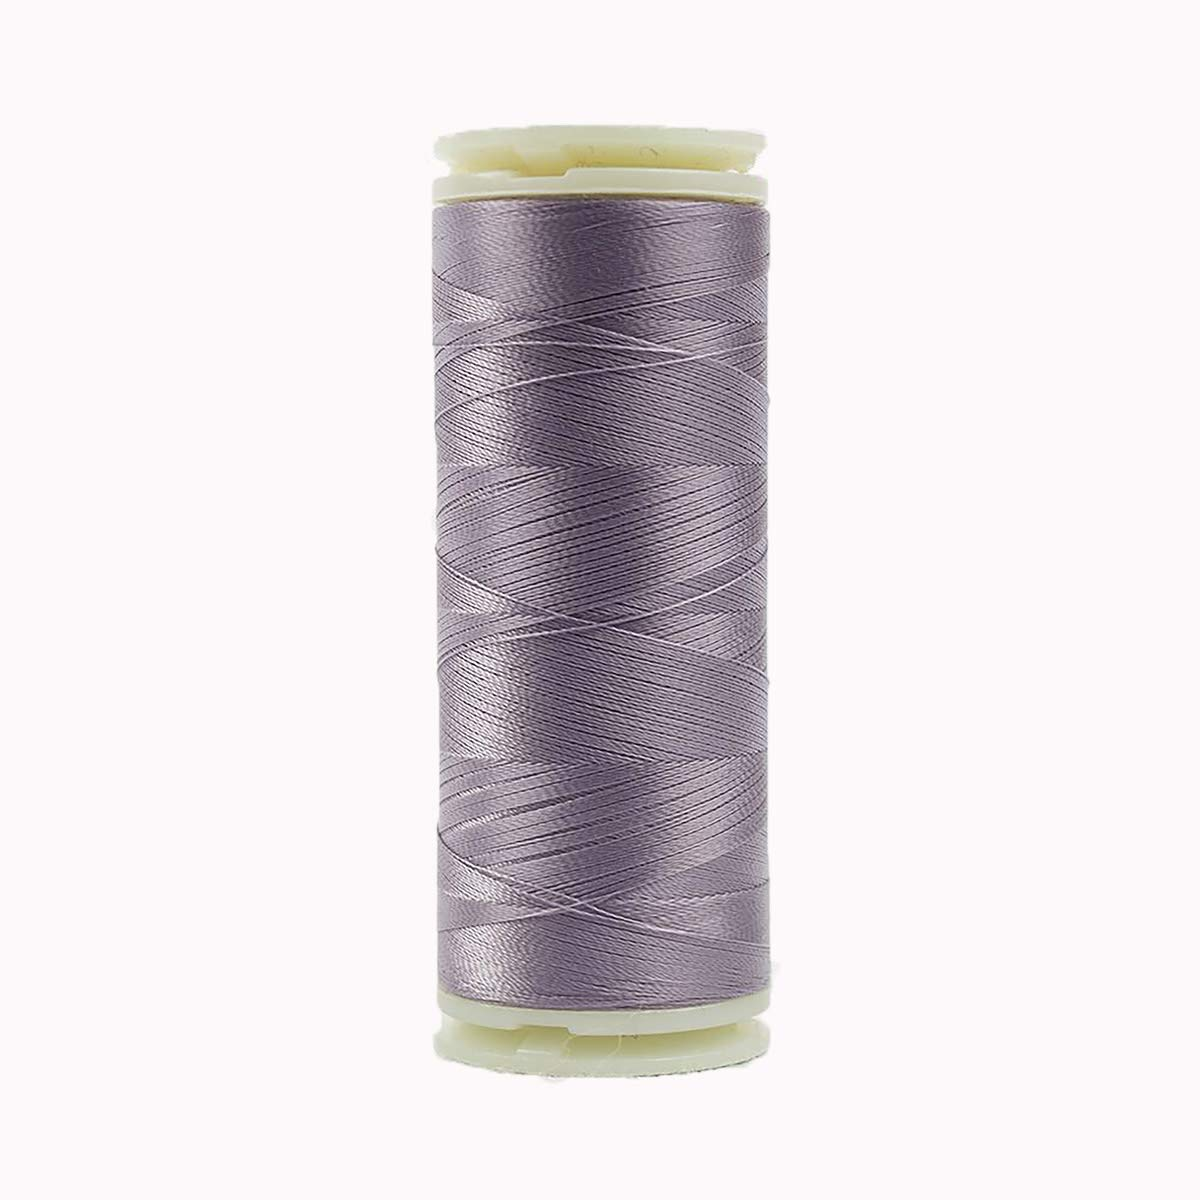 100wt InvisaFil 400m Off White 2-Ply Cottonized Soft Polyester Silk-Like Thread for Fine Sewing Specialty Threads WonderFil